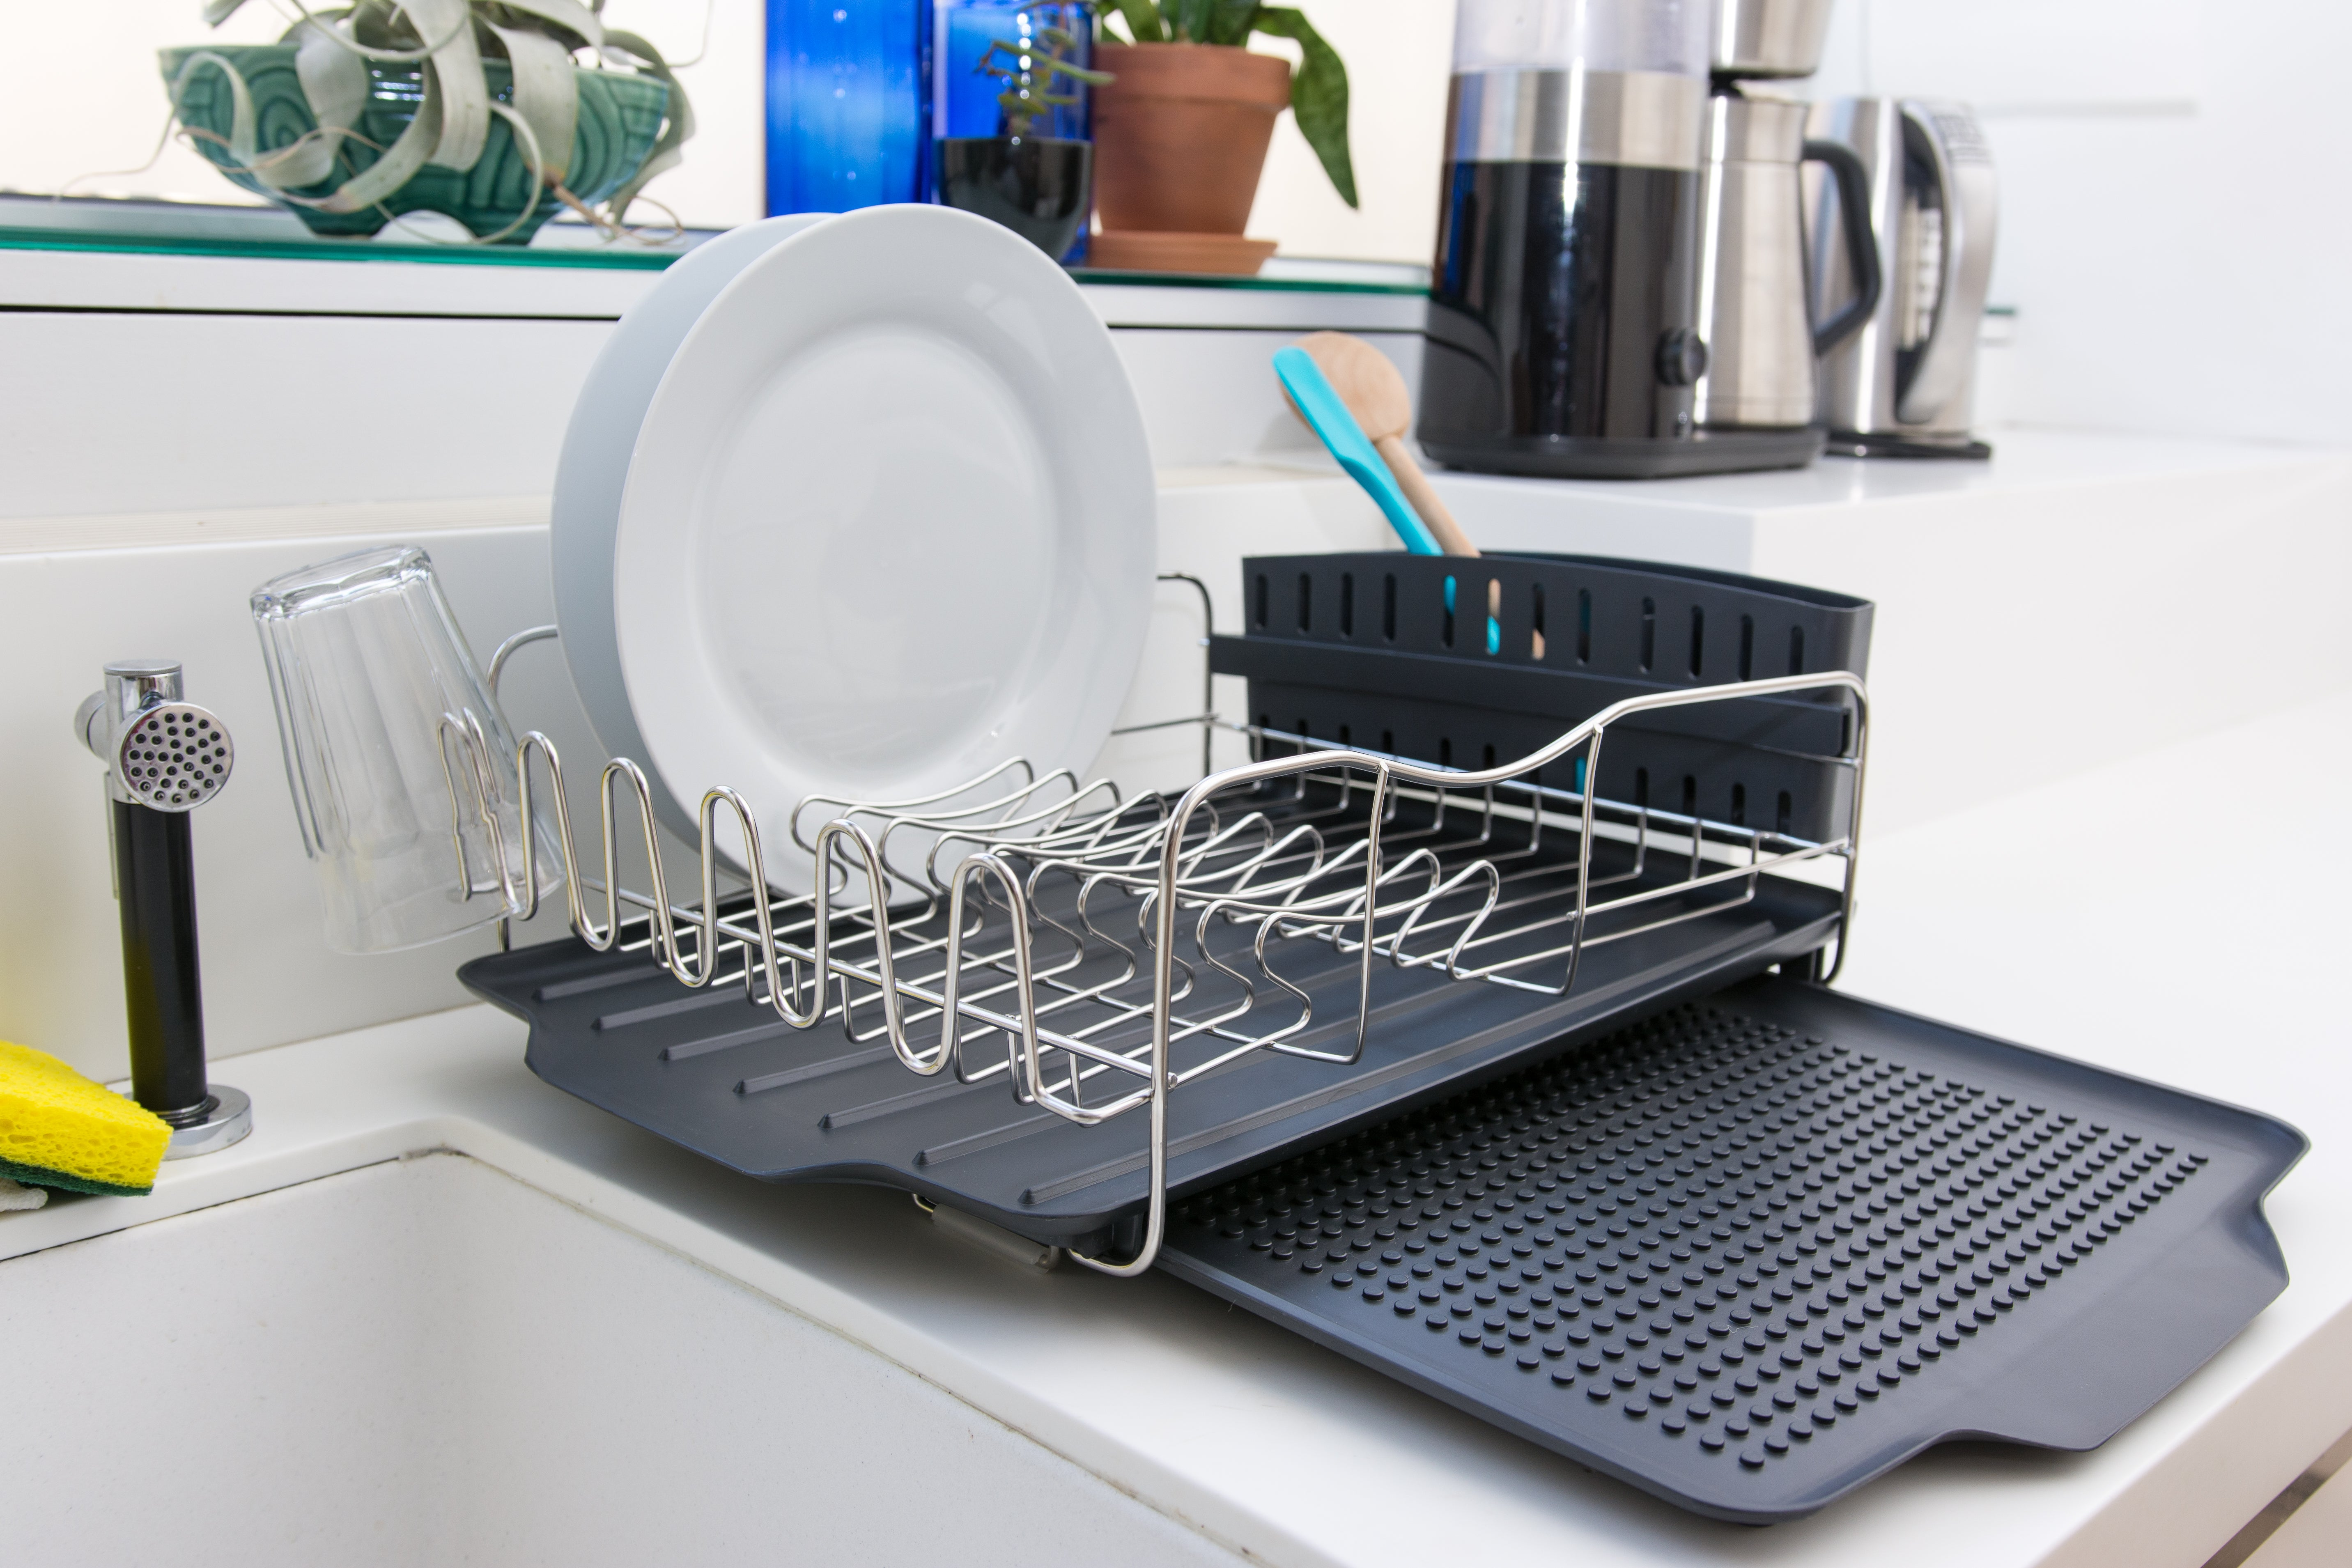 the Polder 4-Piece Advantage Dish Rack System with dishes